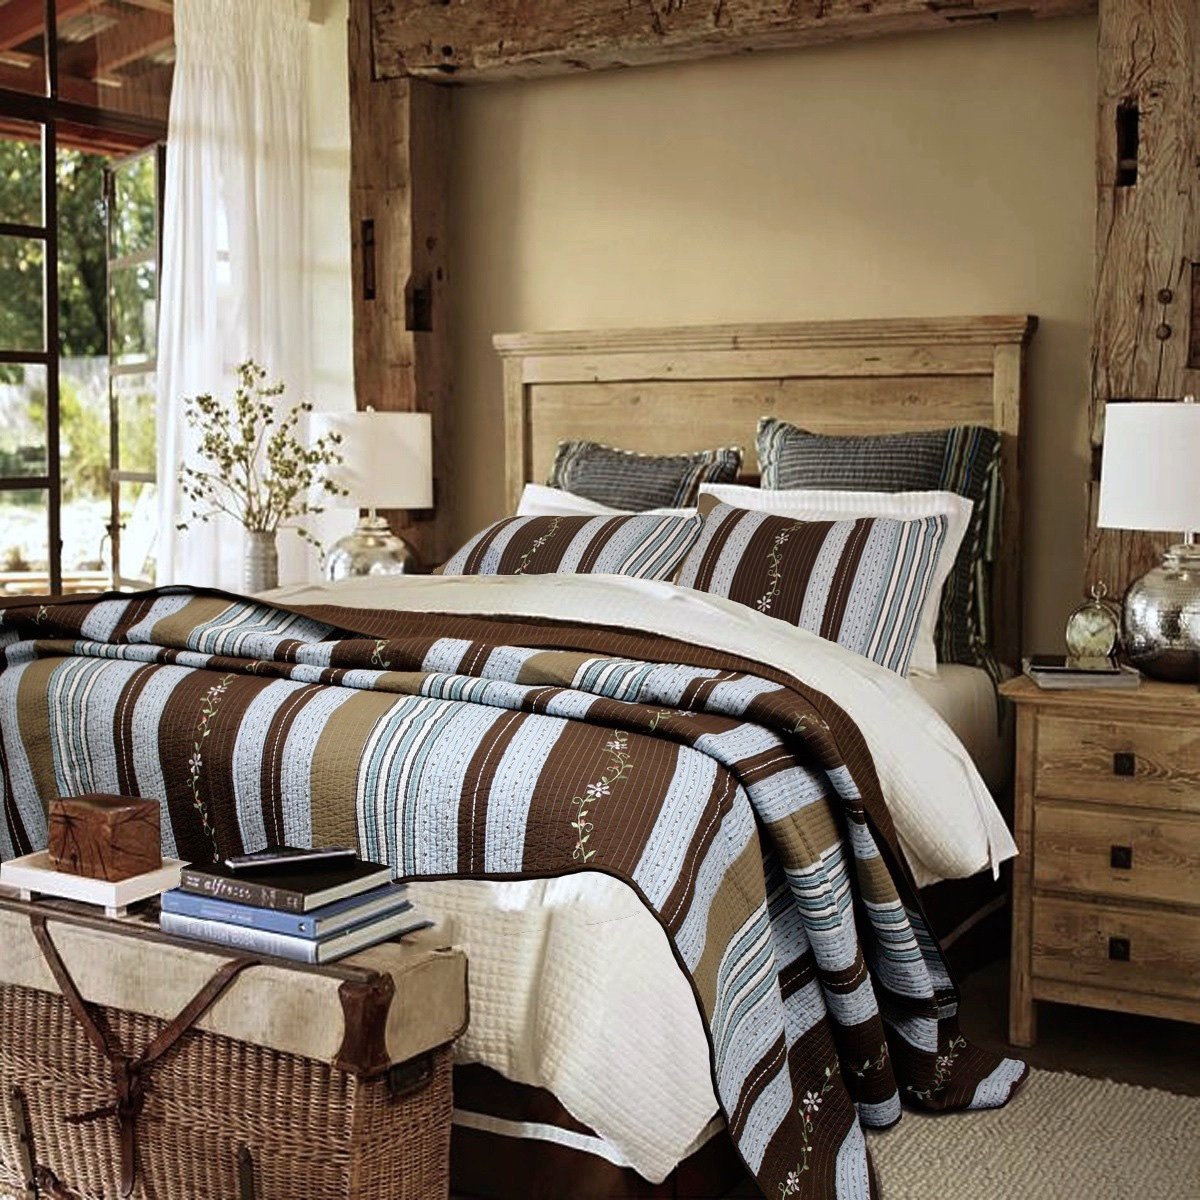 Lake House Blue Rustic Resort Walnut Brown Cabin Woods Stripes with Floral Vine Accents Quilt Set